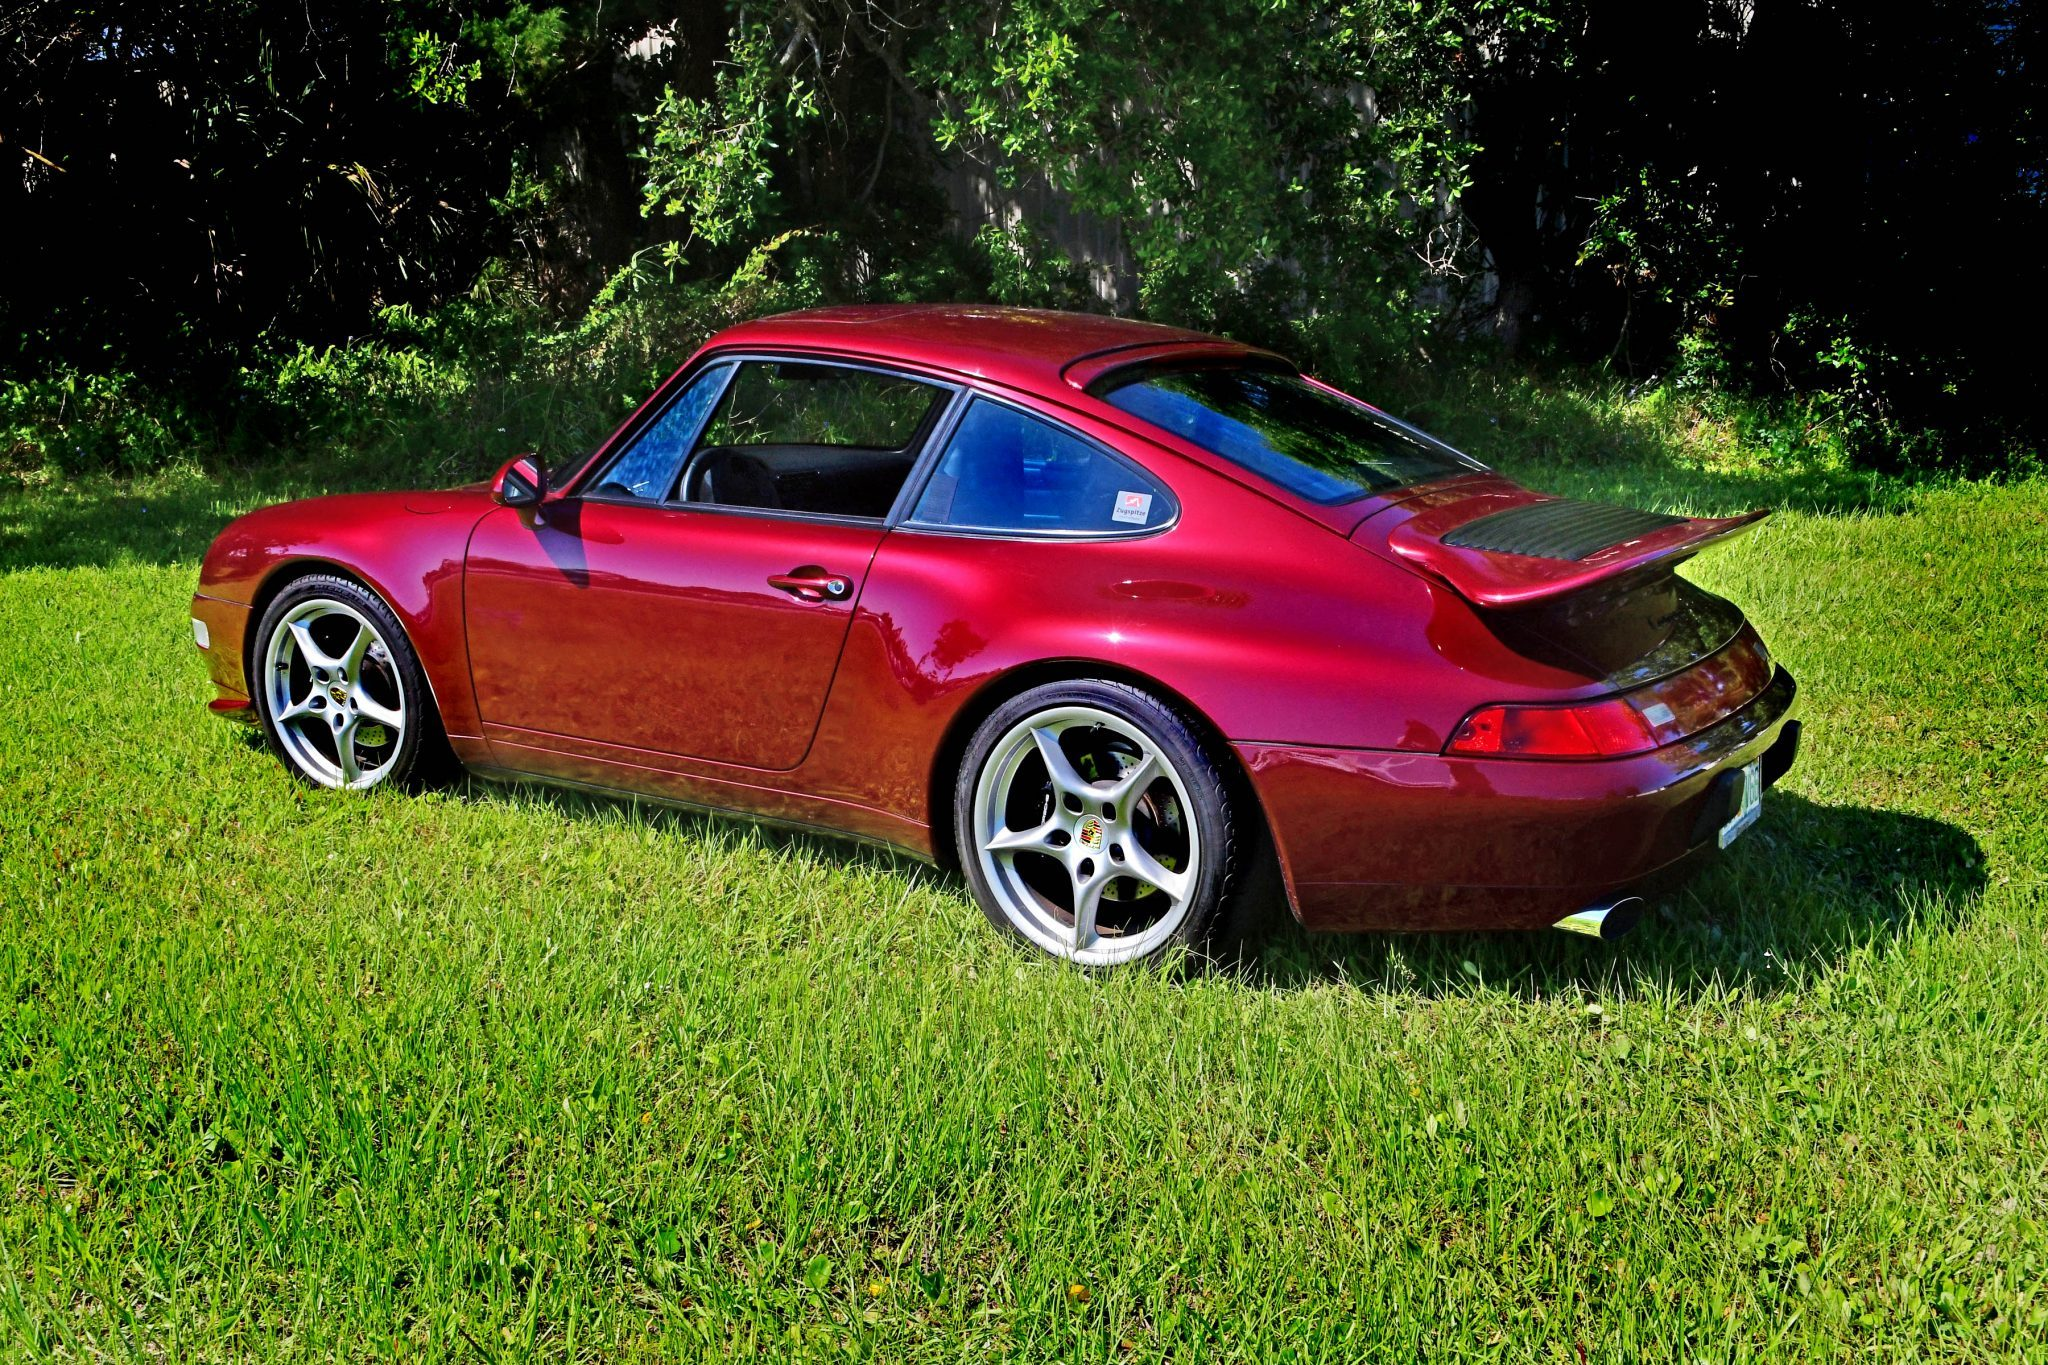 Arena Red 1997 Porsche 993 With Low Miles Looks Very Collectible Autoevolution